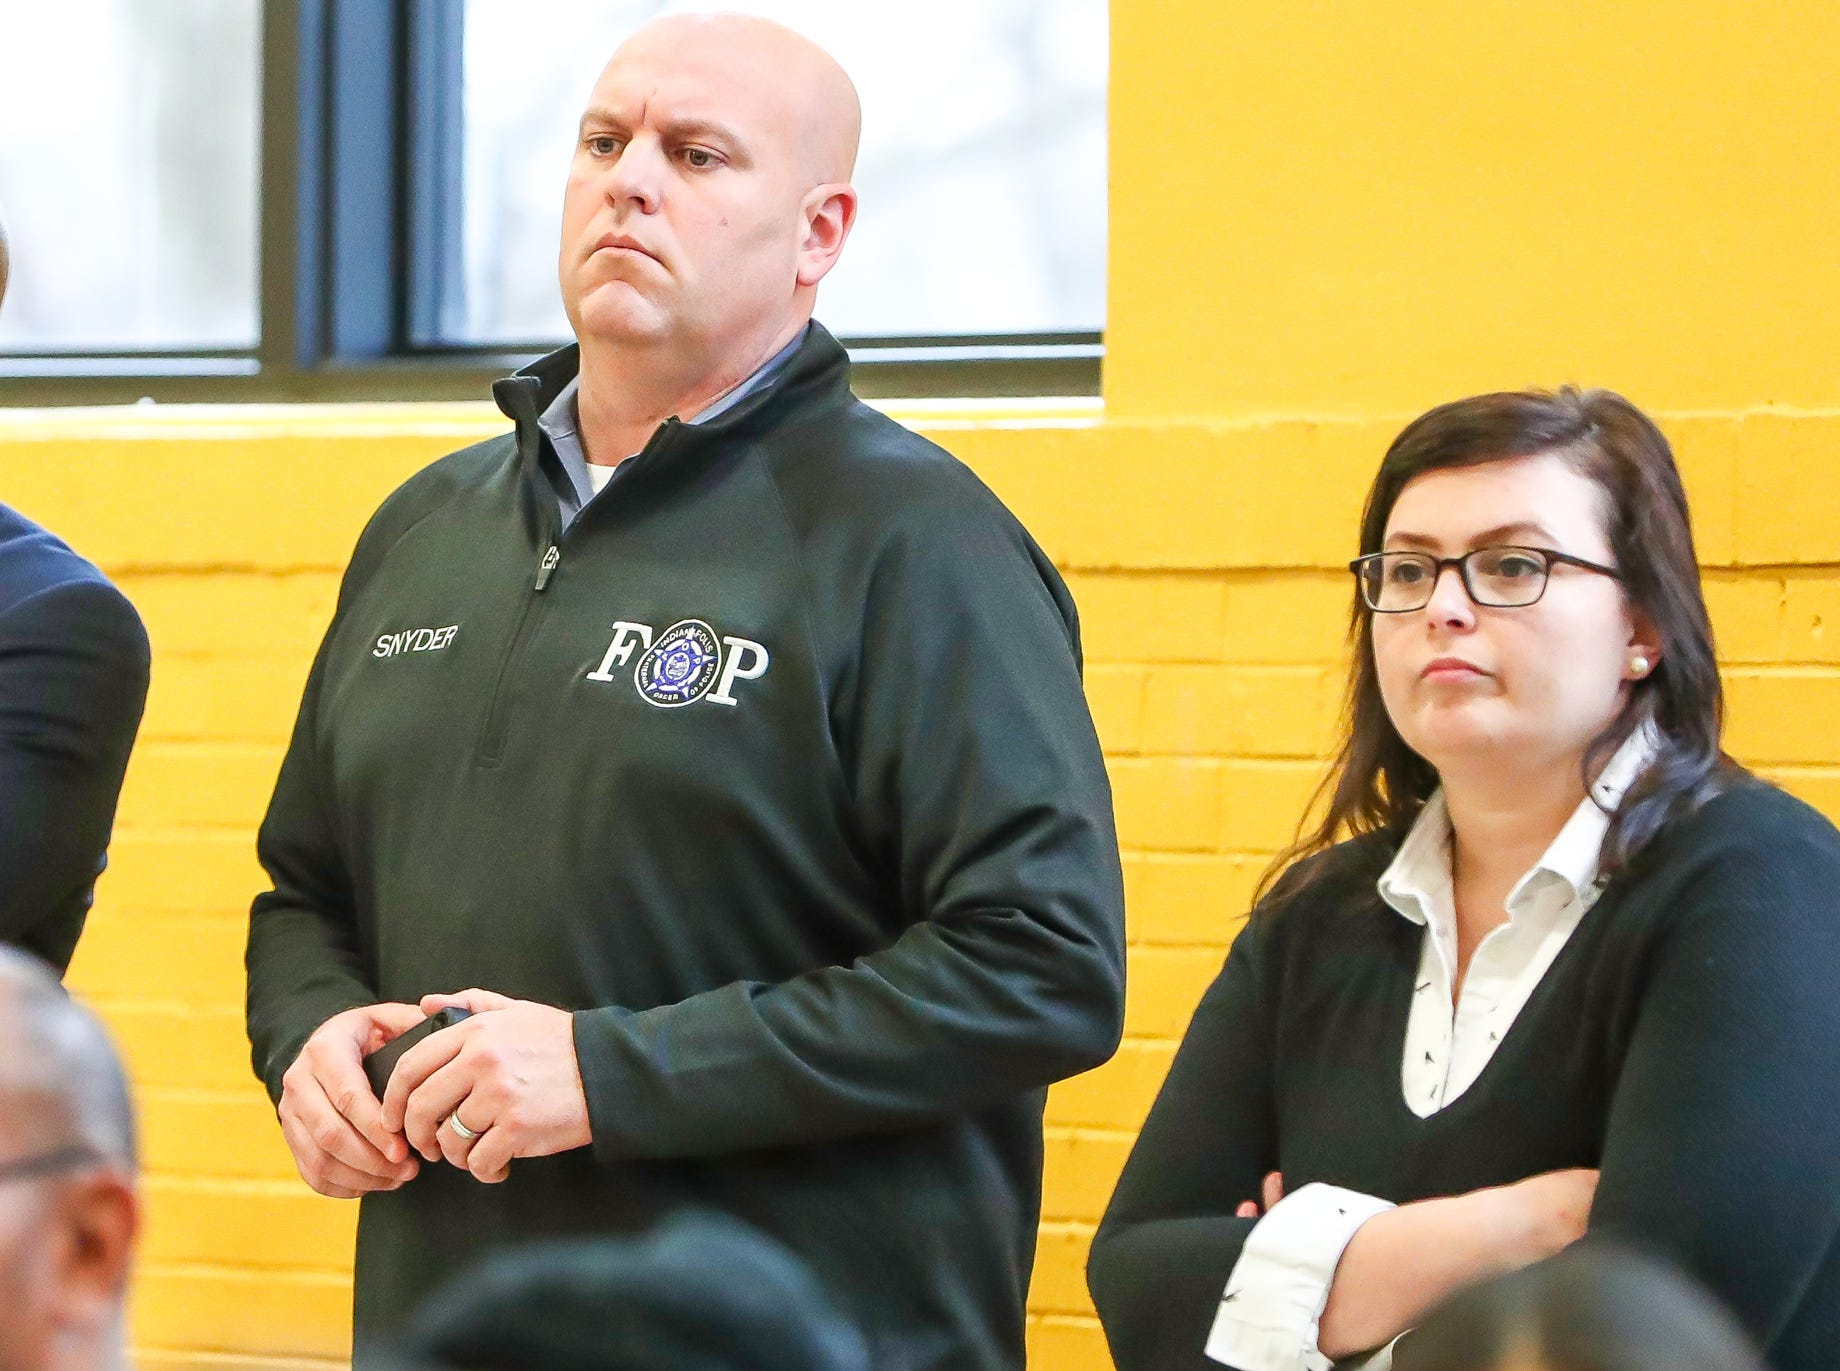 Rick Snyder (left), president of the Indianapolis Fraternal Order of Police, watches as a new pilot program to test body worn cameras is announced during a press conference at the Edna Martin Christian Center in Indianapolis on Monday, Feb. 4, 2019.